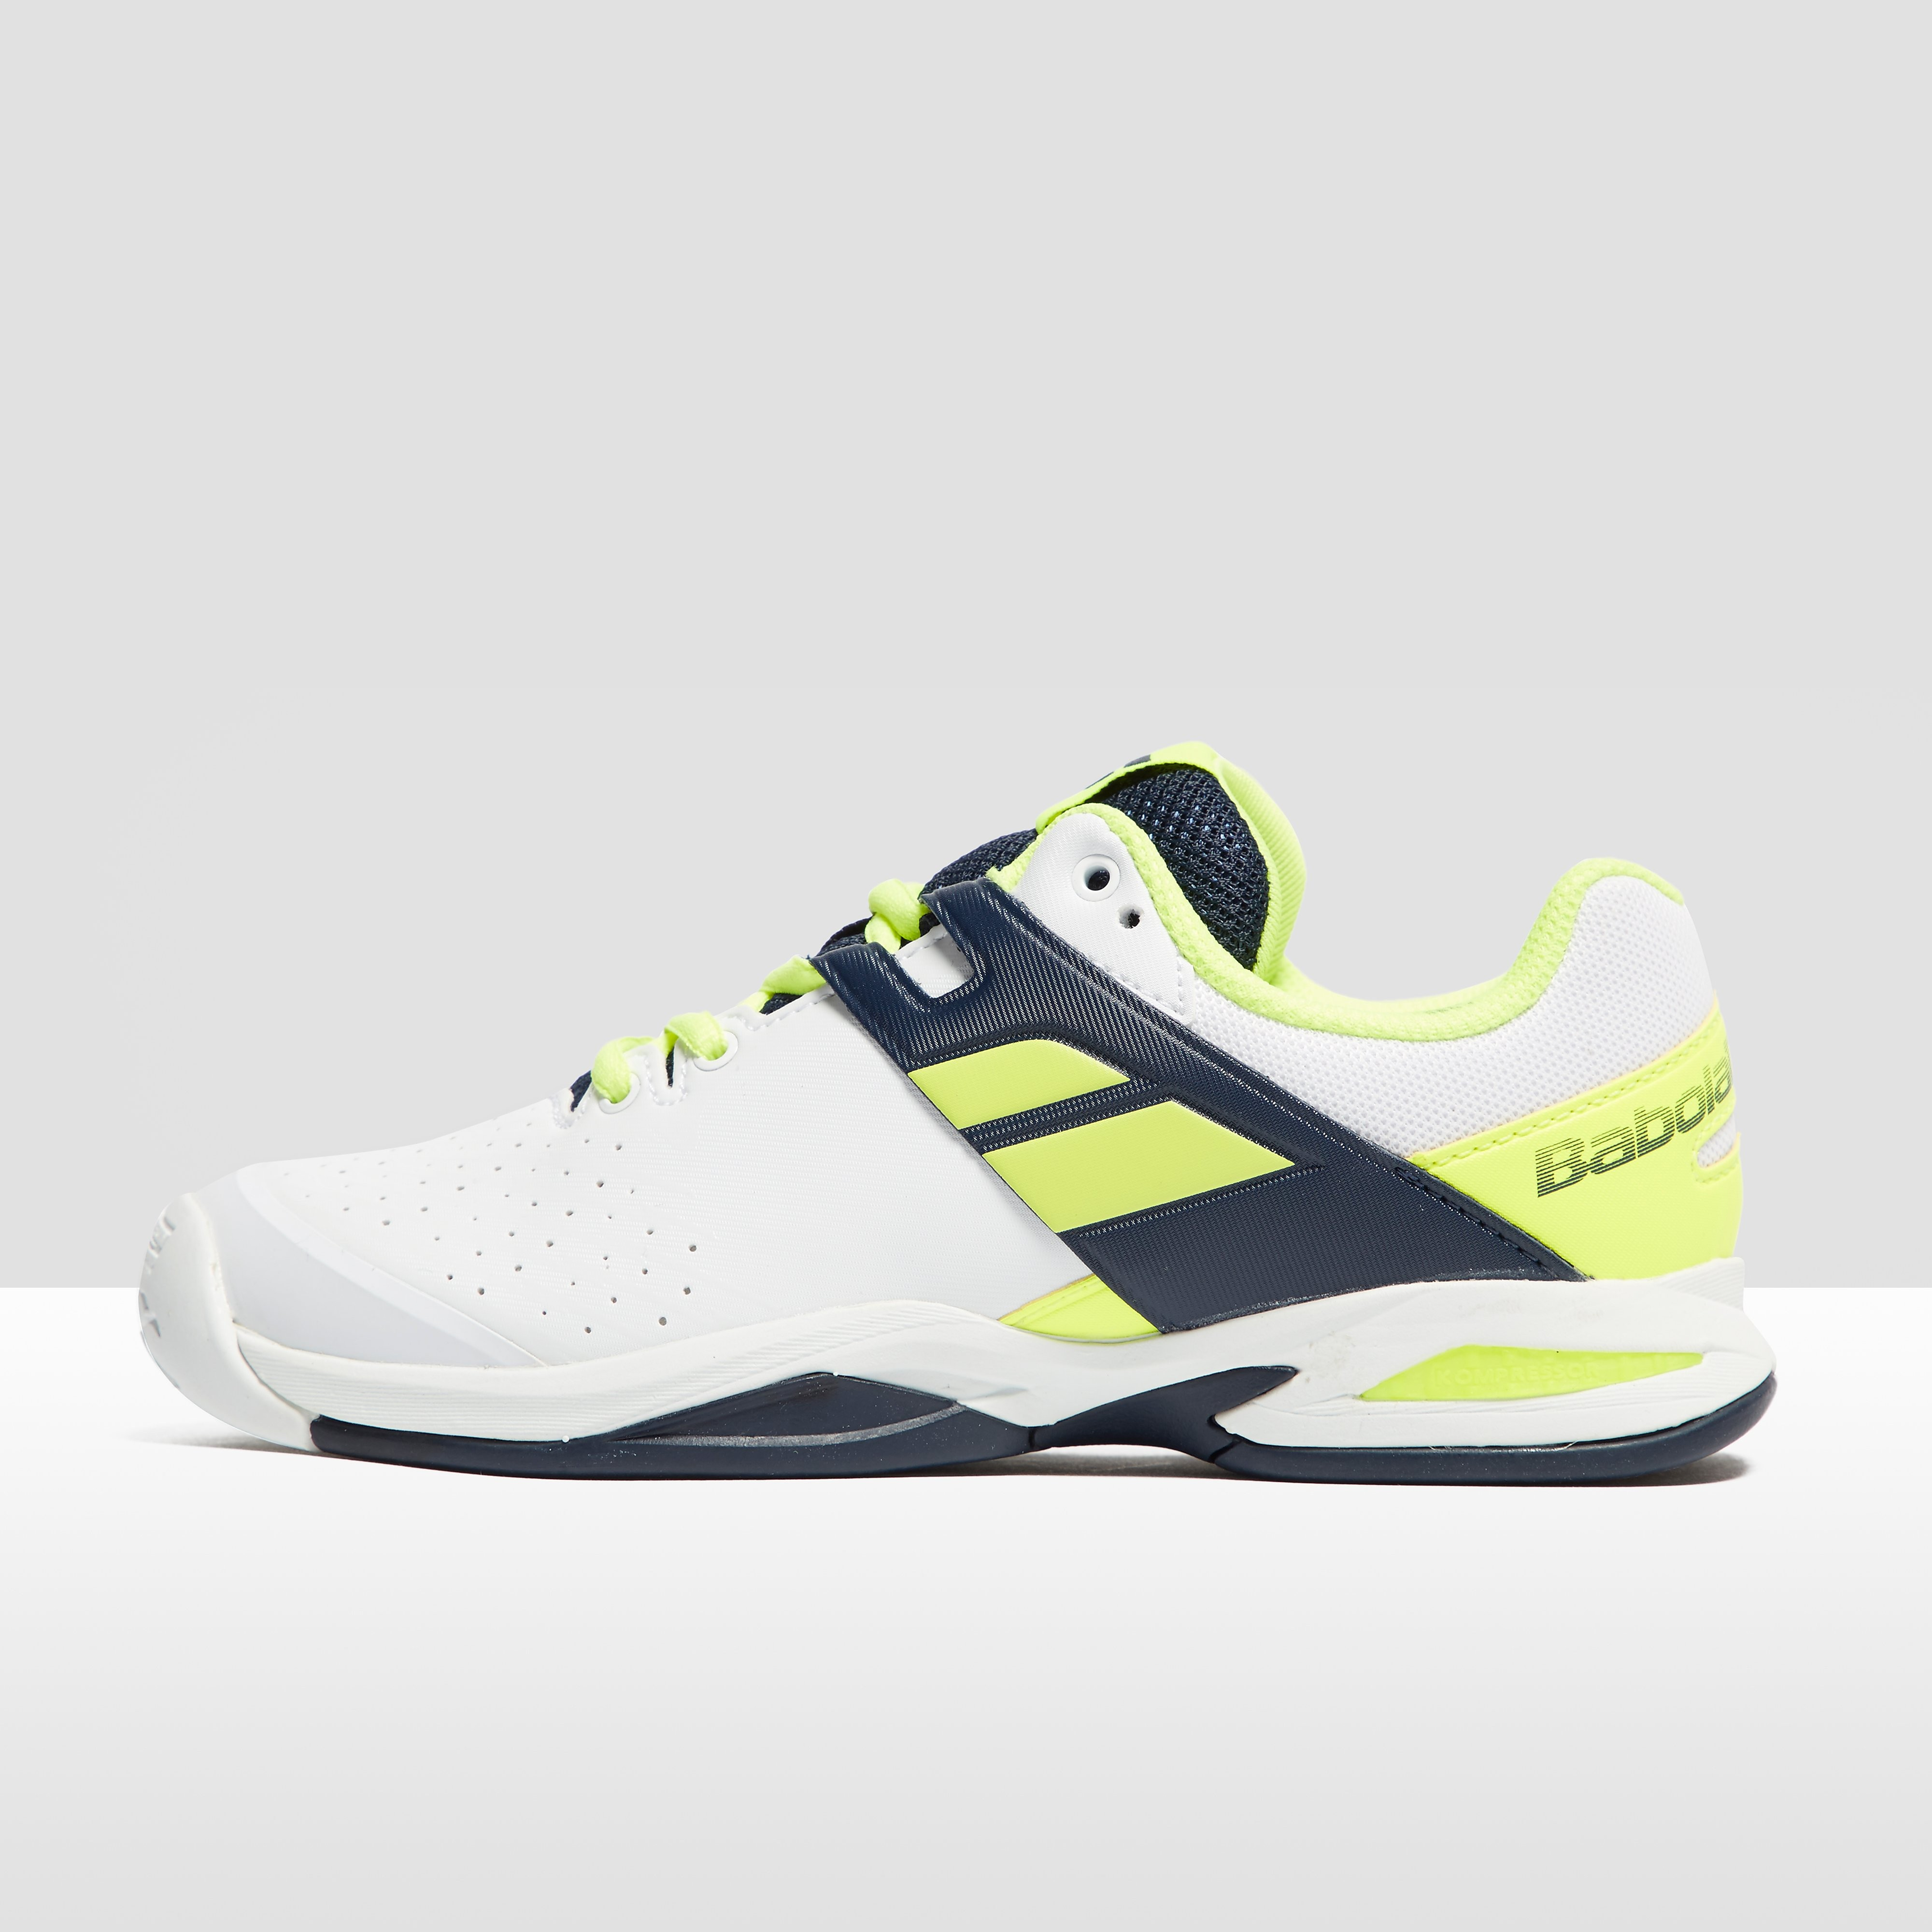 Babolat Propulse All Court Junior Tennis Shoes